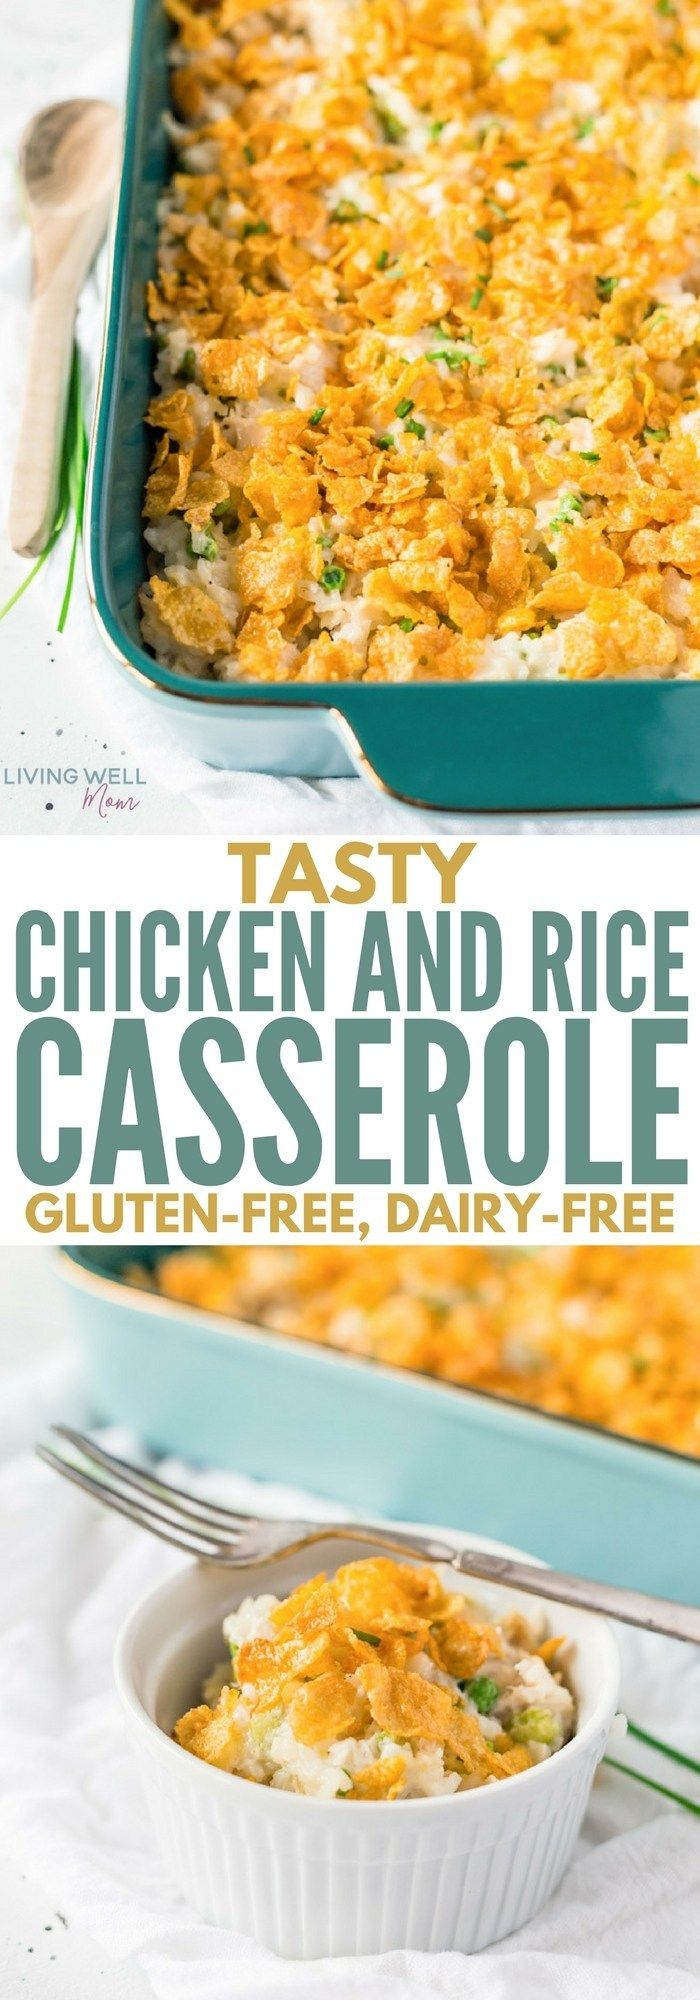 My family loves this Tasty Chicken and Rice Casserole - it's simple, filling, delicious and it's gluten-free and dairy-free! Perfect #dinnerrecipes #recipe #glutenfree #glutenfreerecipes #dairyfree #chickendinner